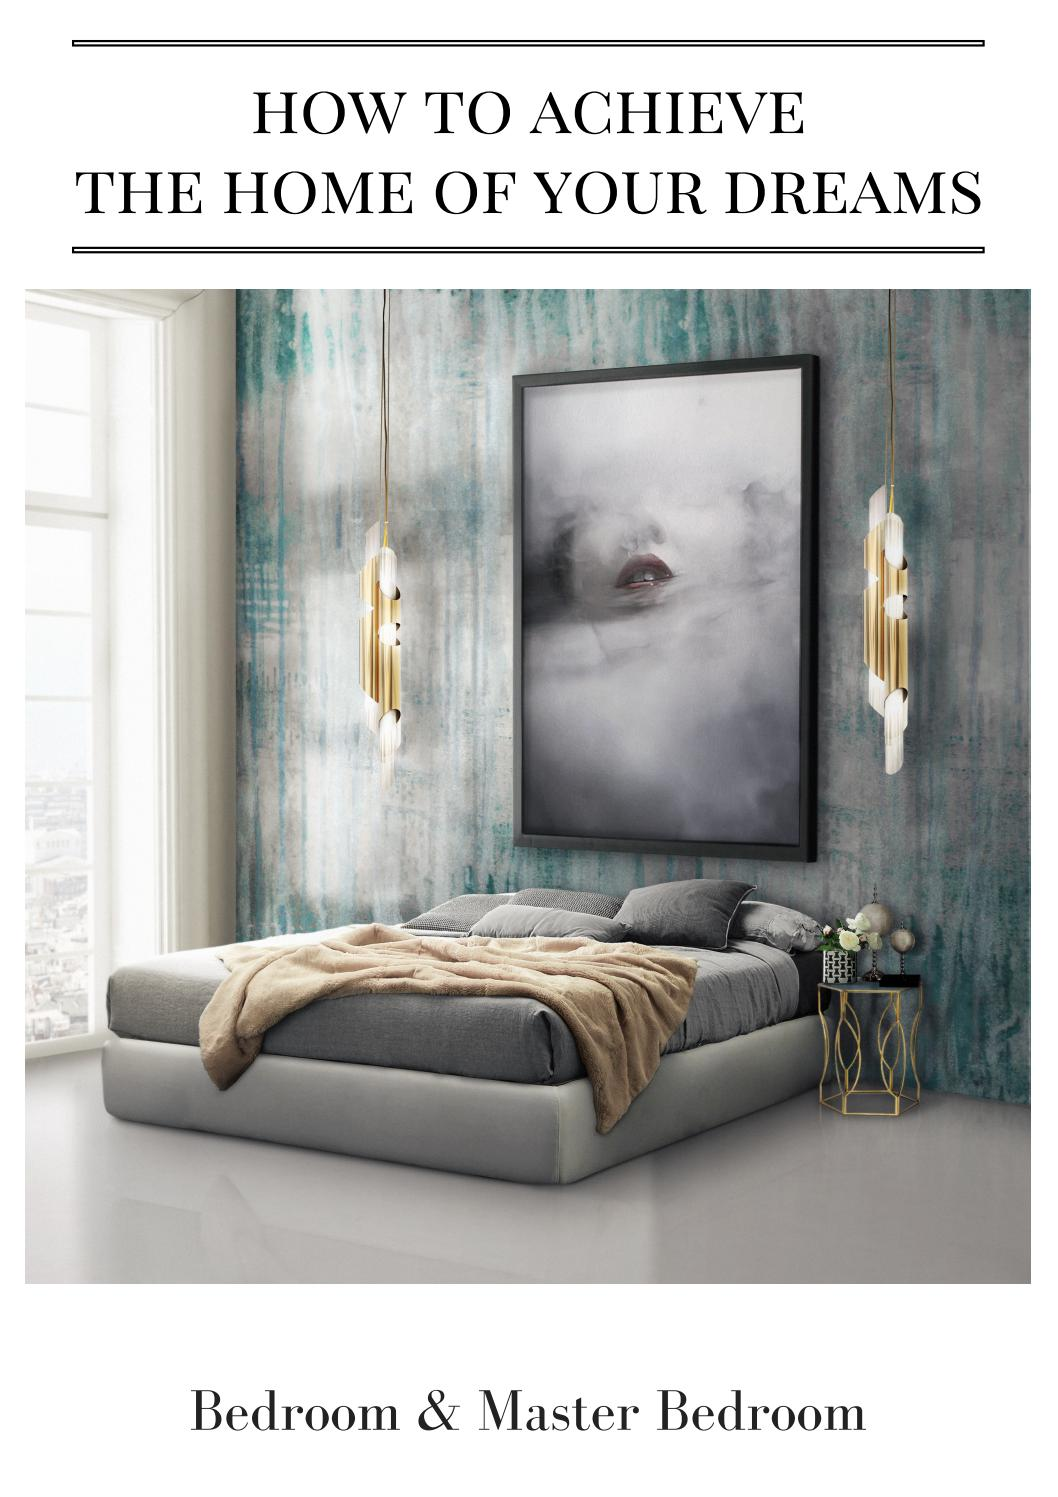 How To Achieve The Home Of Your Dreams Bedroom Master Bedroom By Insplosion Issuu